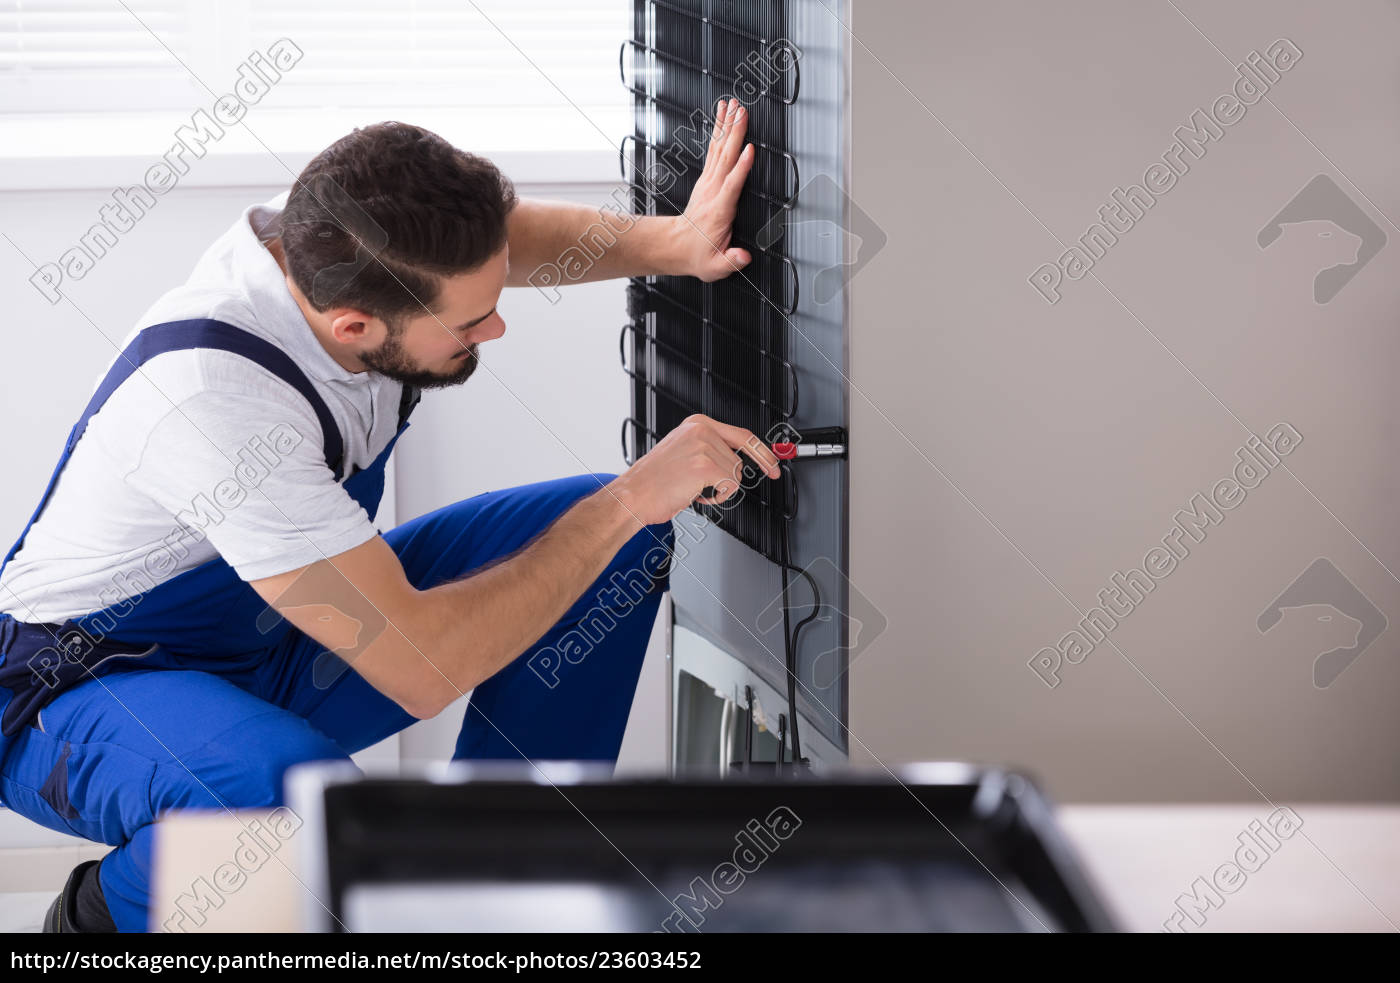 technician, fixing, refrigerator - 23603452